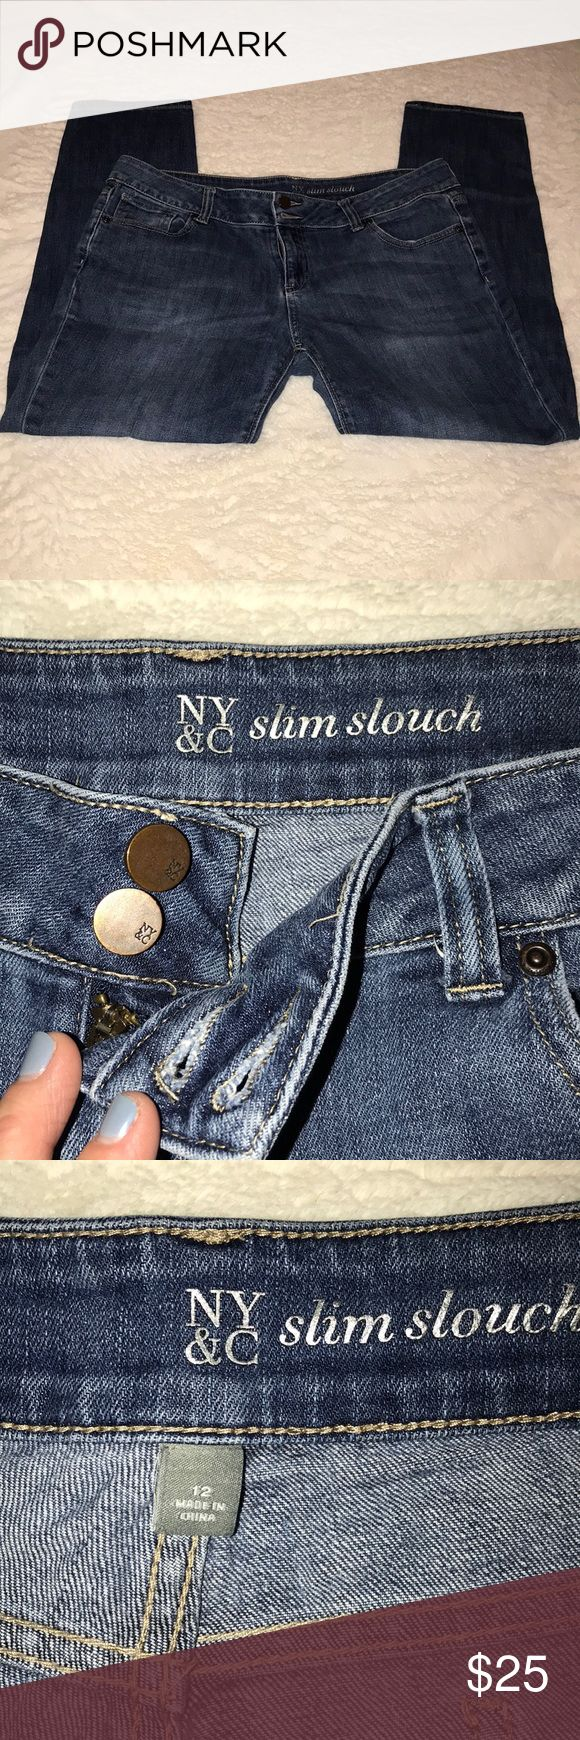 NY & Co Slim Slouch Jean Zip Fly Size 12 New York & Company Slim Slouch Jeans (similar to boyfriend - not as baggy) - great medium wash with light distressing on both front legs - double button and zip fly. Excellent Condition! Worn once! Bundle to save! New York & Company Jeans Straight Leg